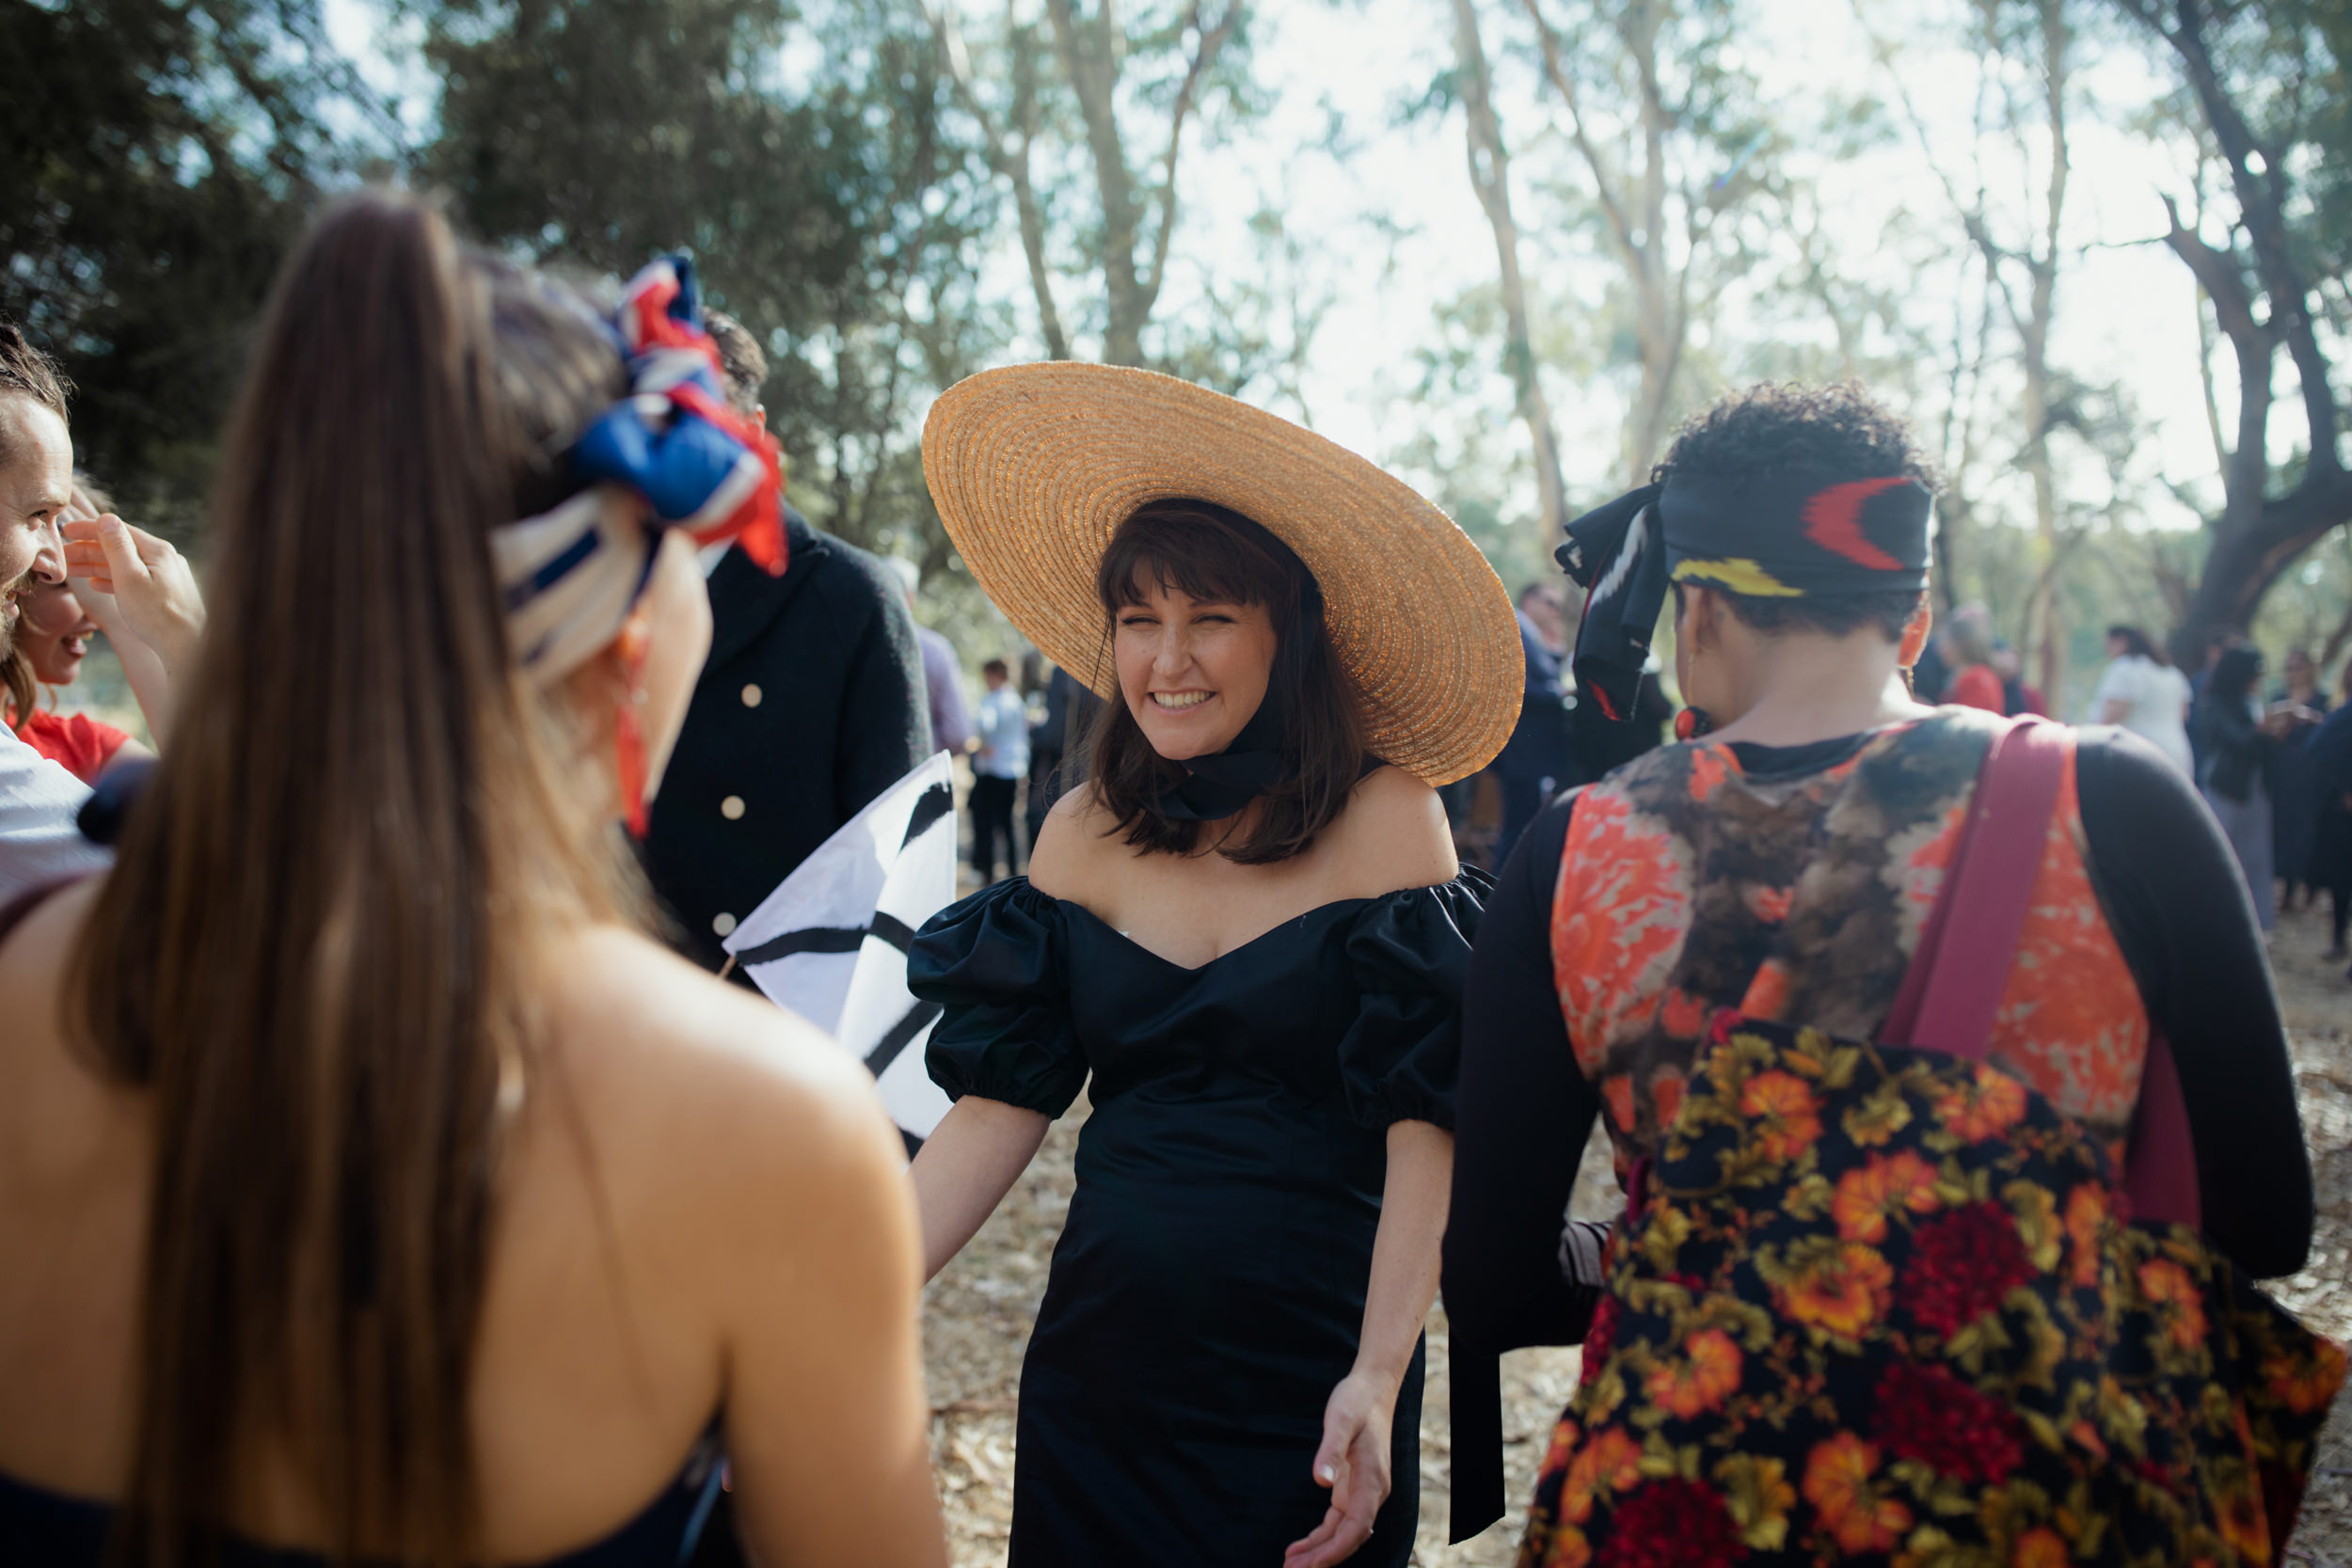 I-Got-You-Babe-Weddings-Claire-Dave-Trawol-VIC-Country-Property-Wedding083.JPG